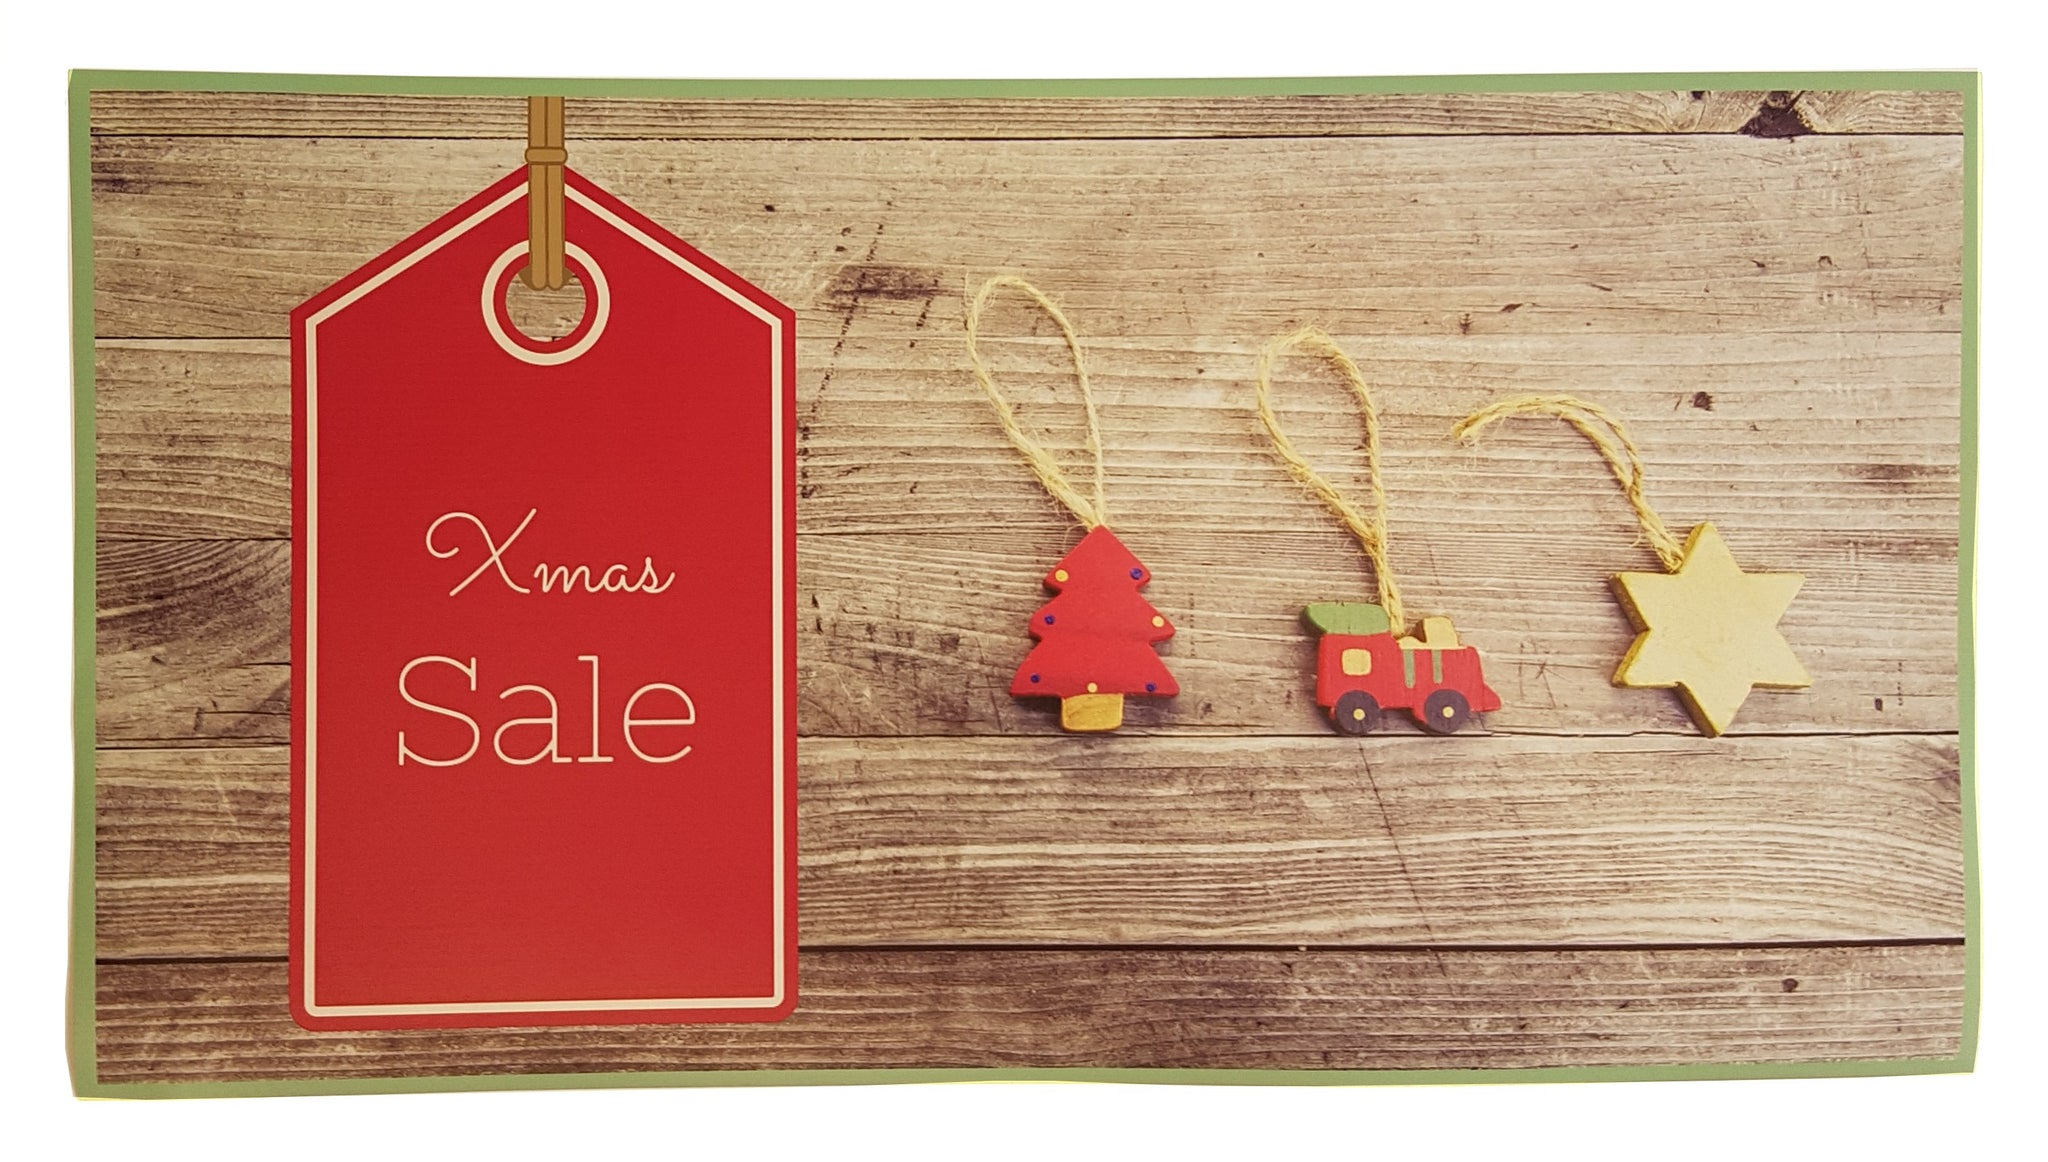 Xmas Sale Poster-Vintage Style Xmas Sale Poster